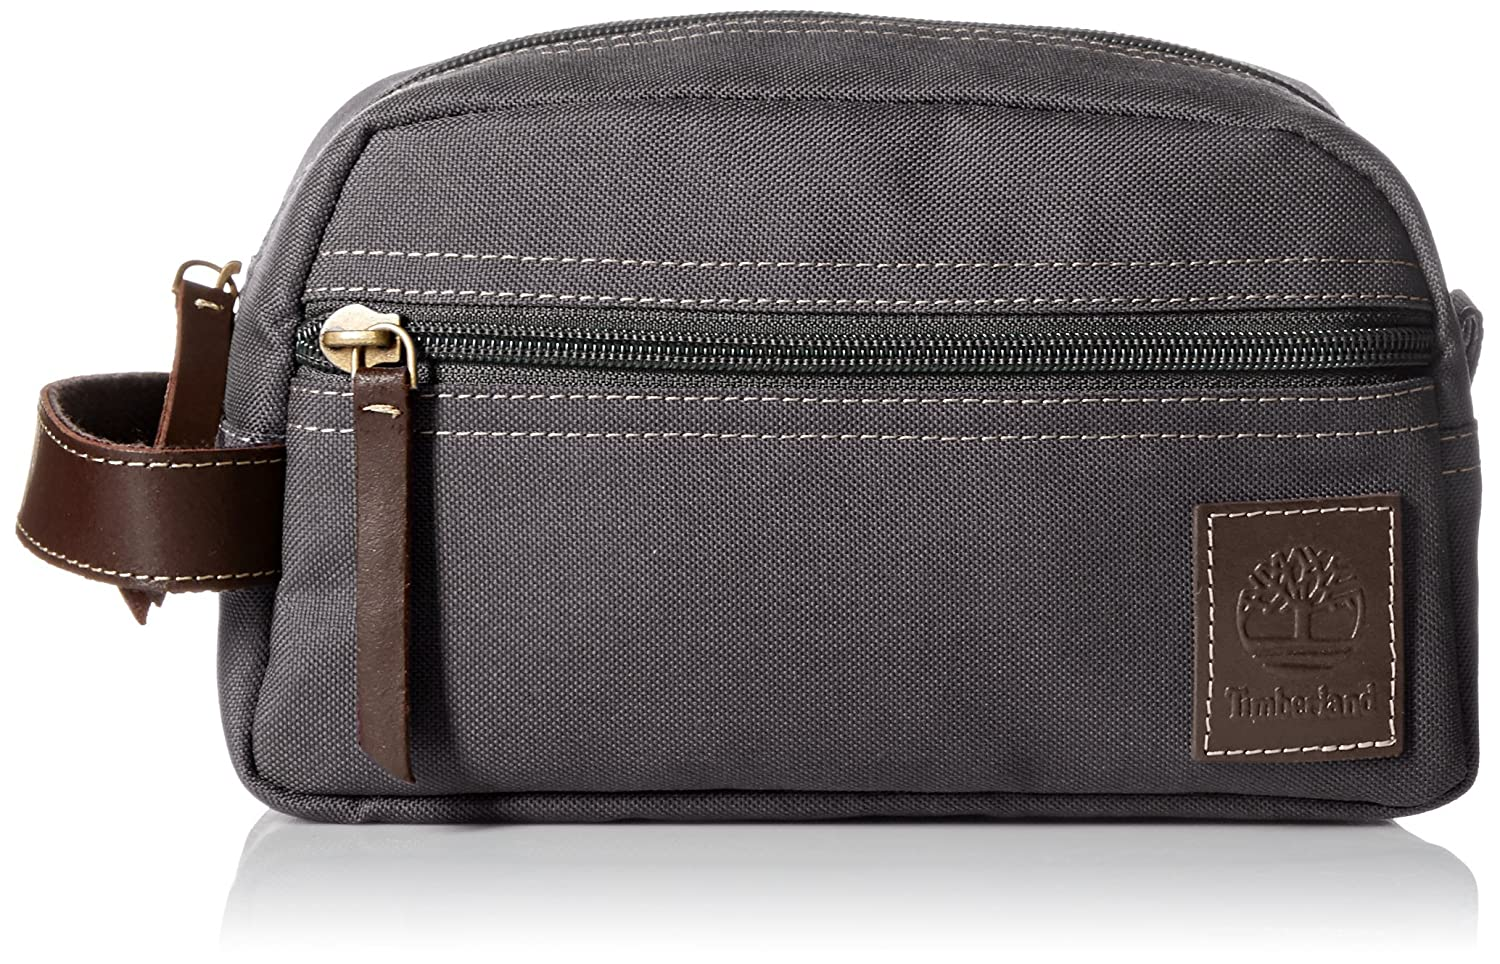 aed29c9ecbe7 Amazon.com  Timberland Men s Toiletry Bag Canvas Travel Kit Organizer